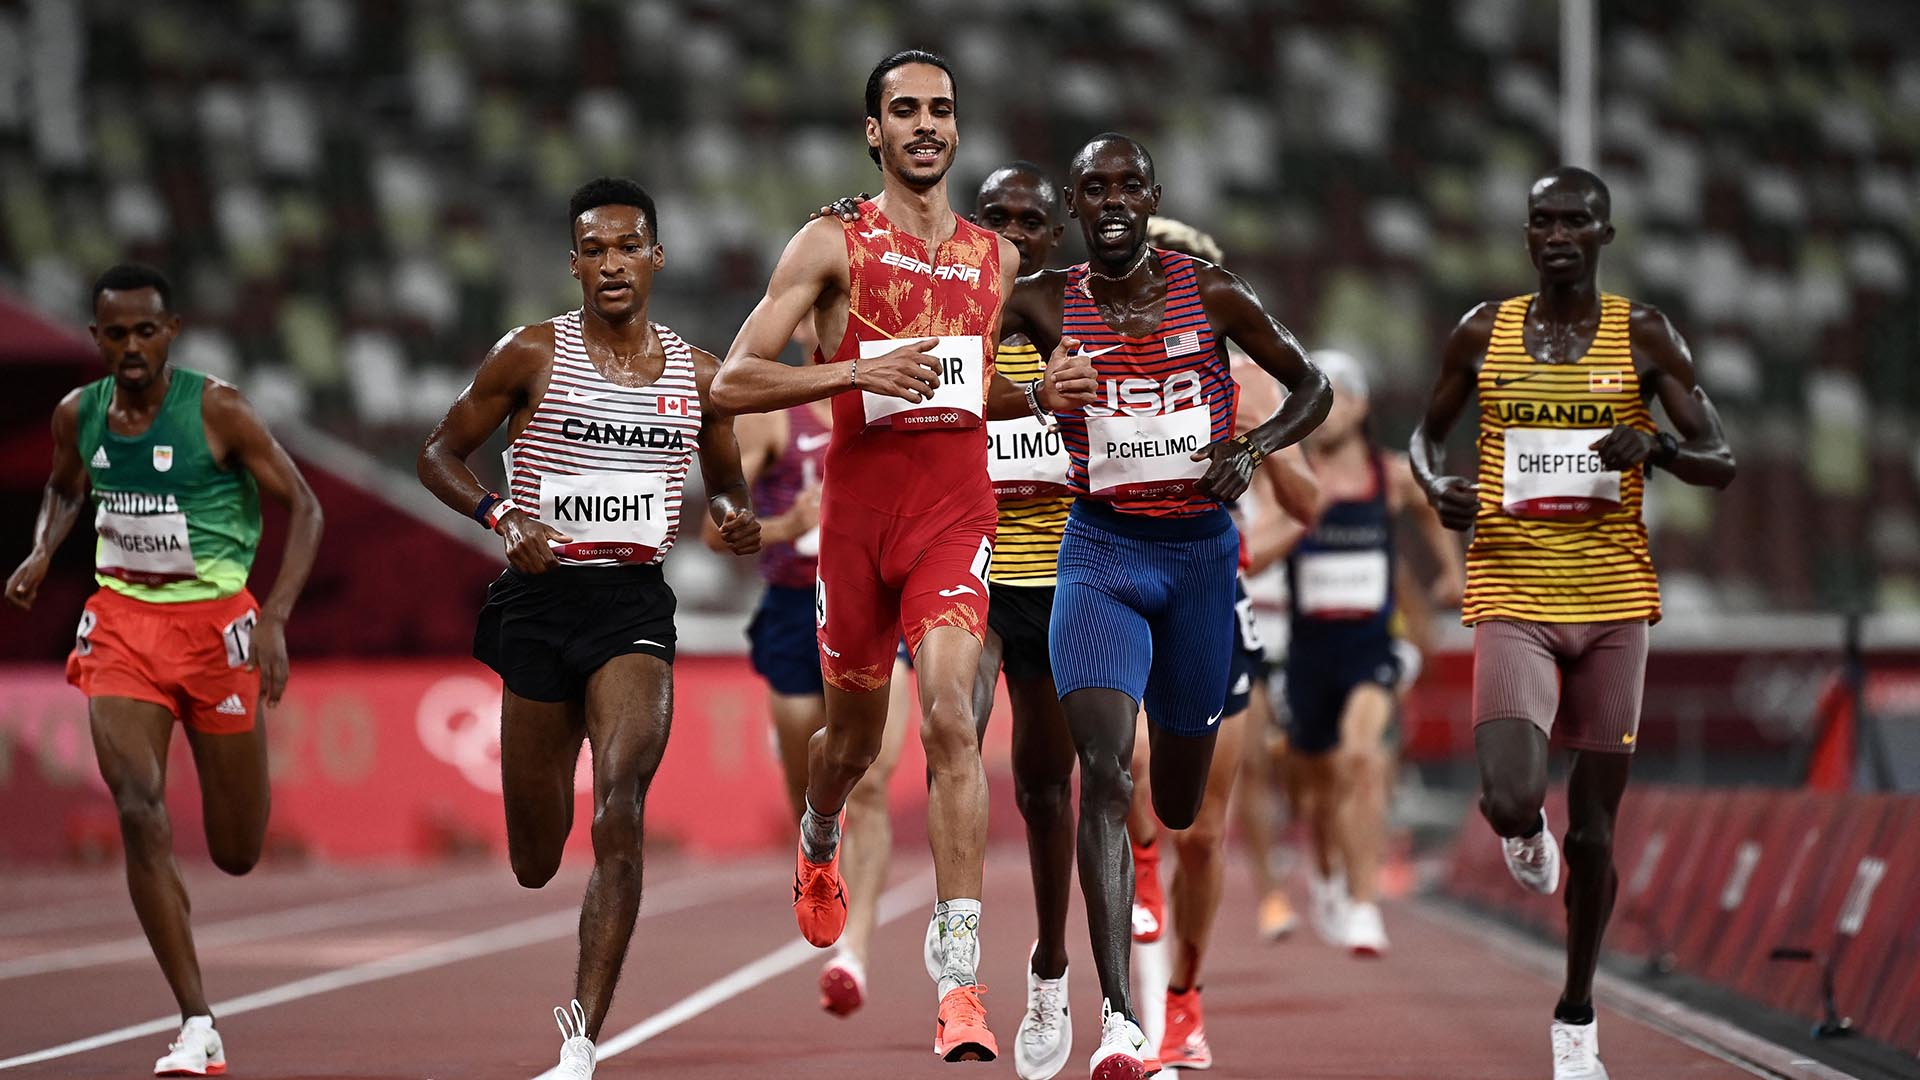 Image for Spain's Katir cruises into 5,000m final with fastest time